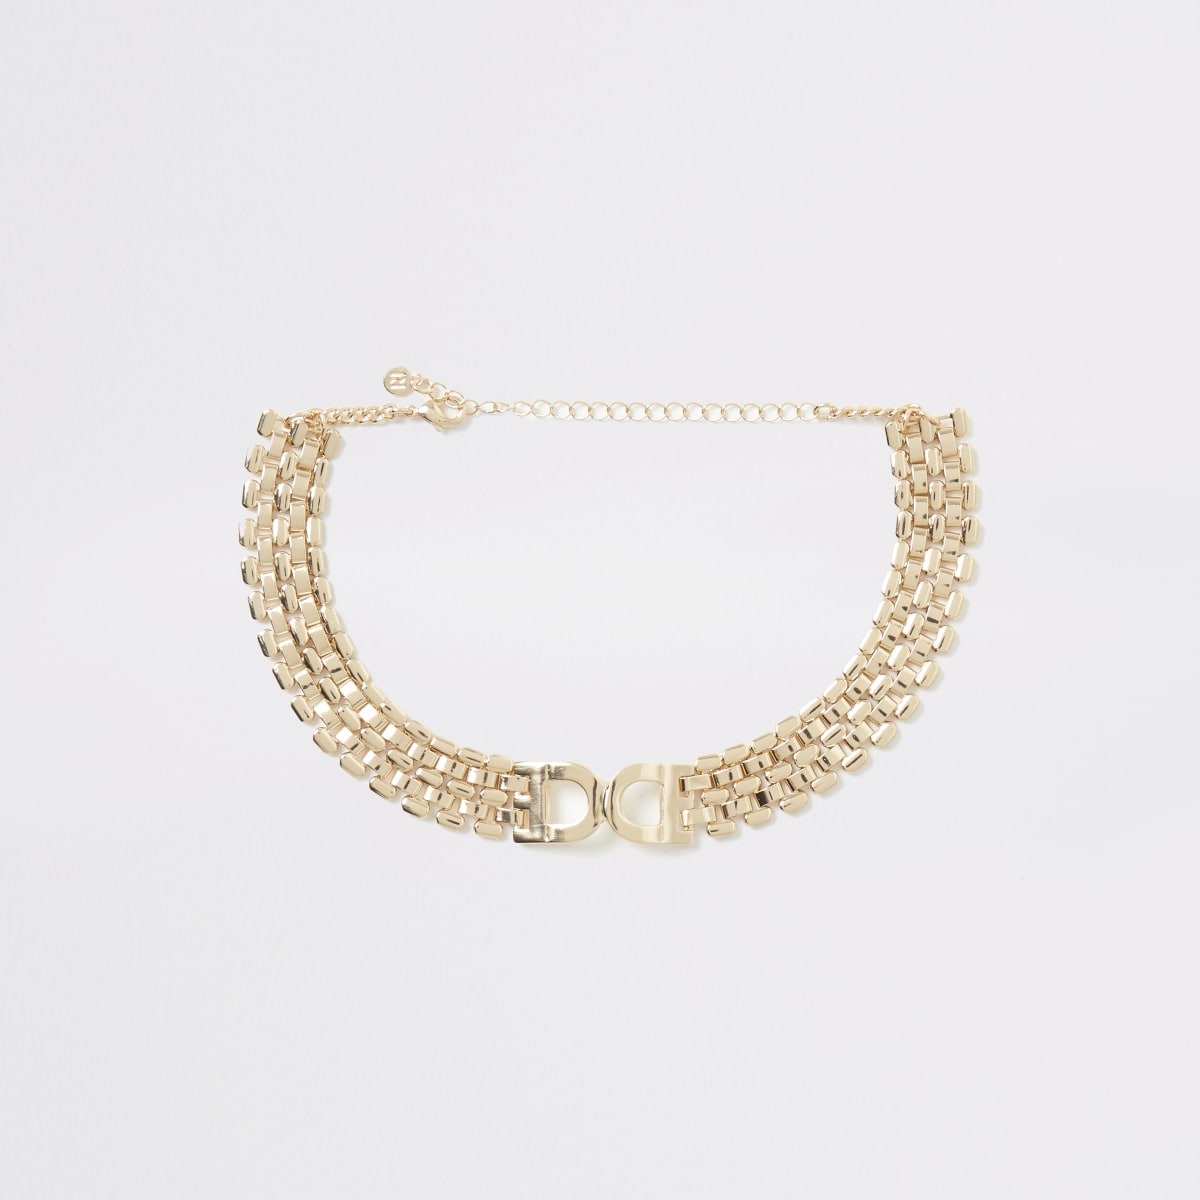 Gold color D ring choker